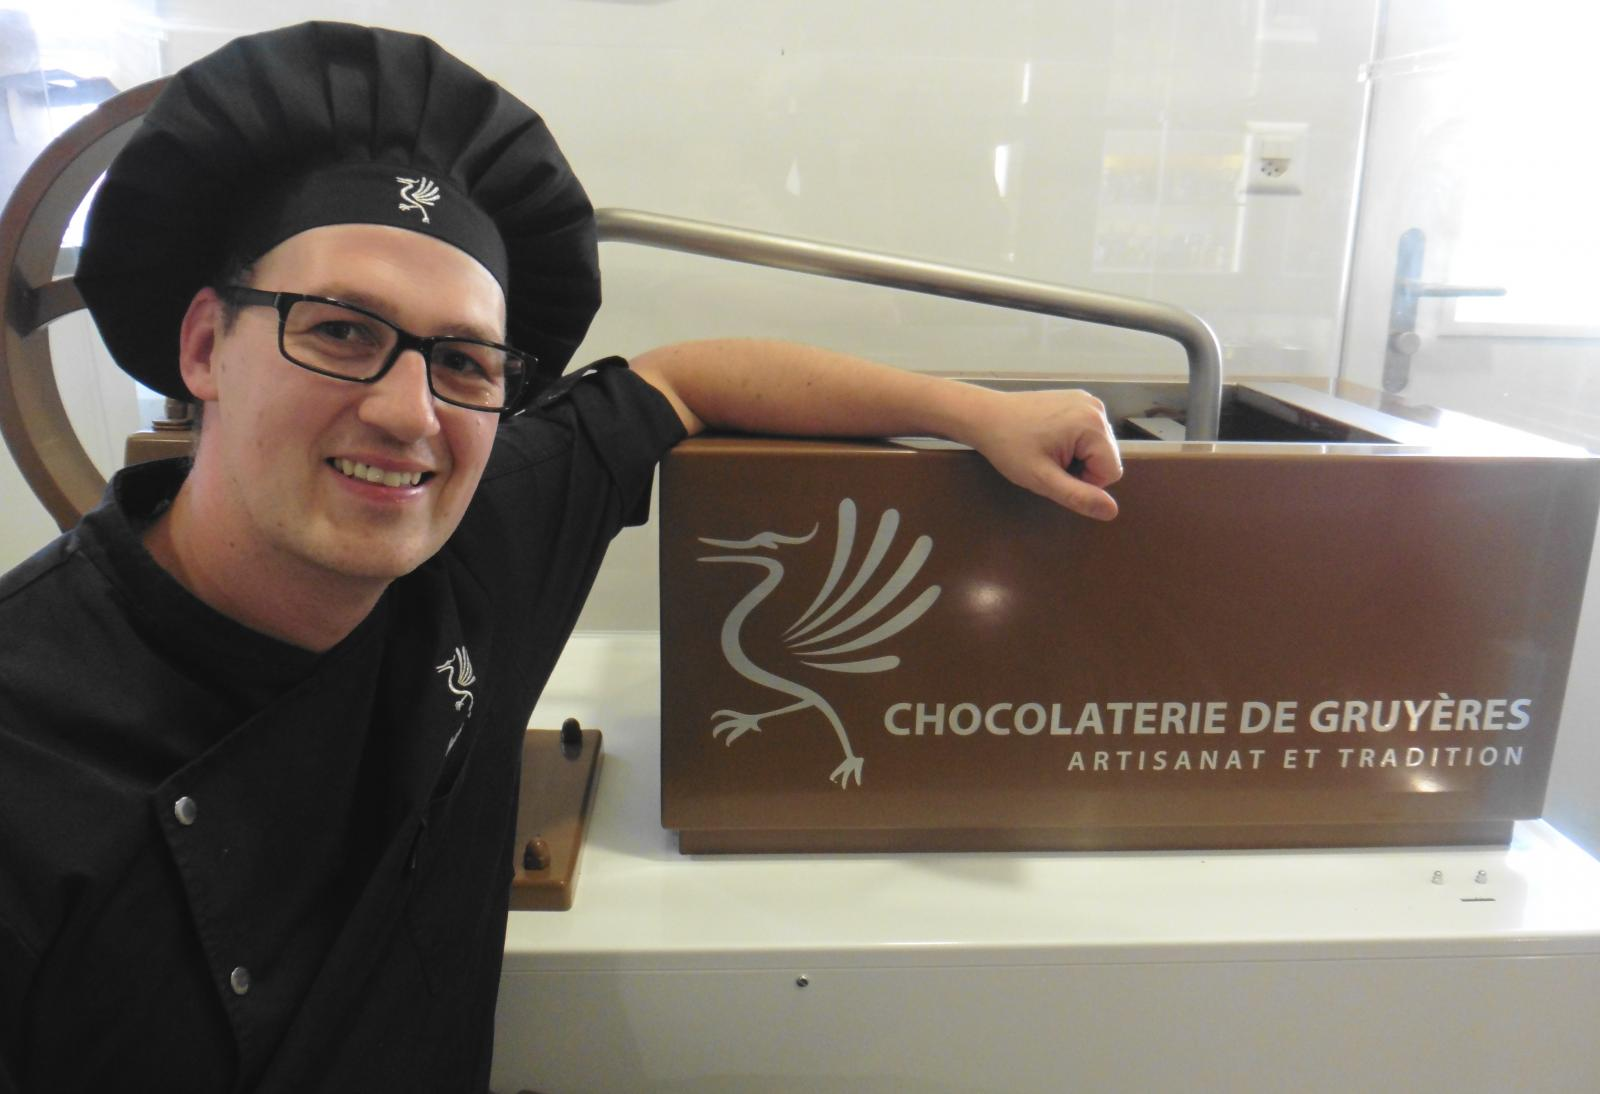 Chocolate maker in Gruyeres